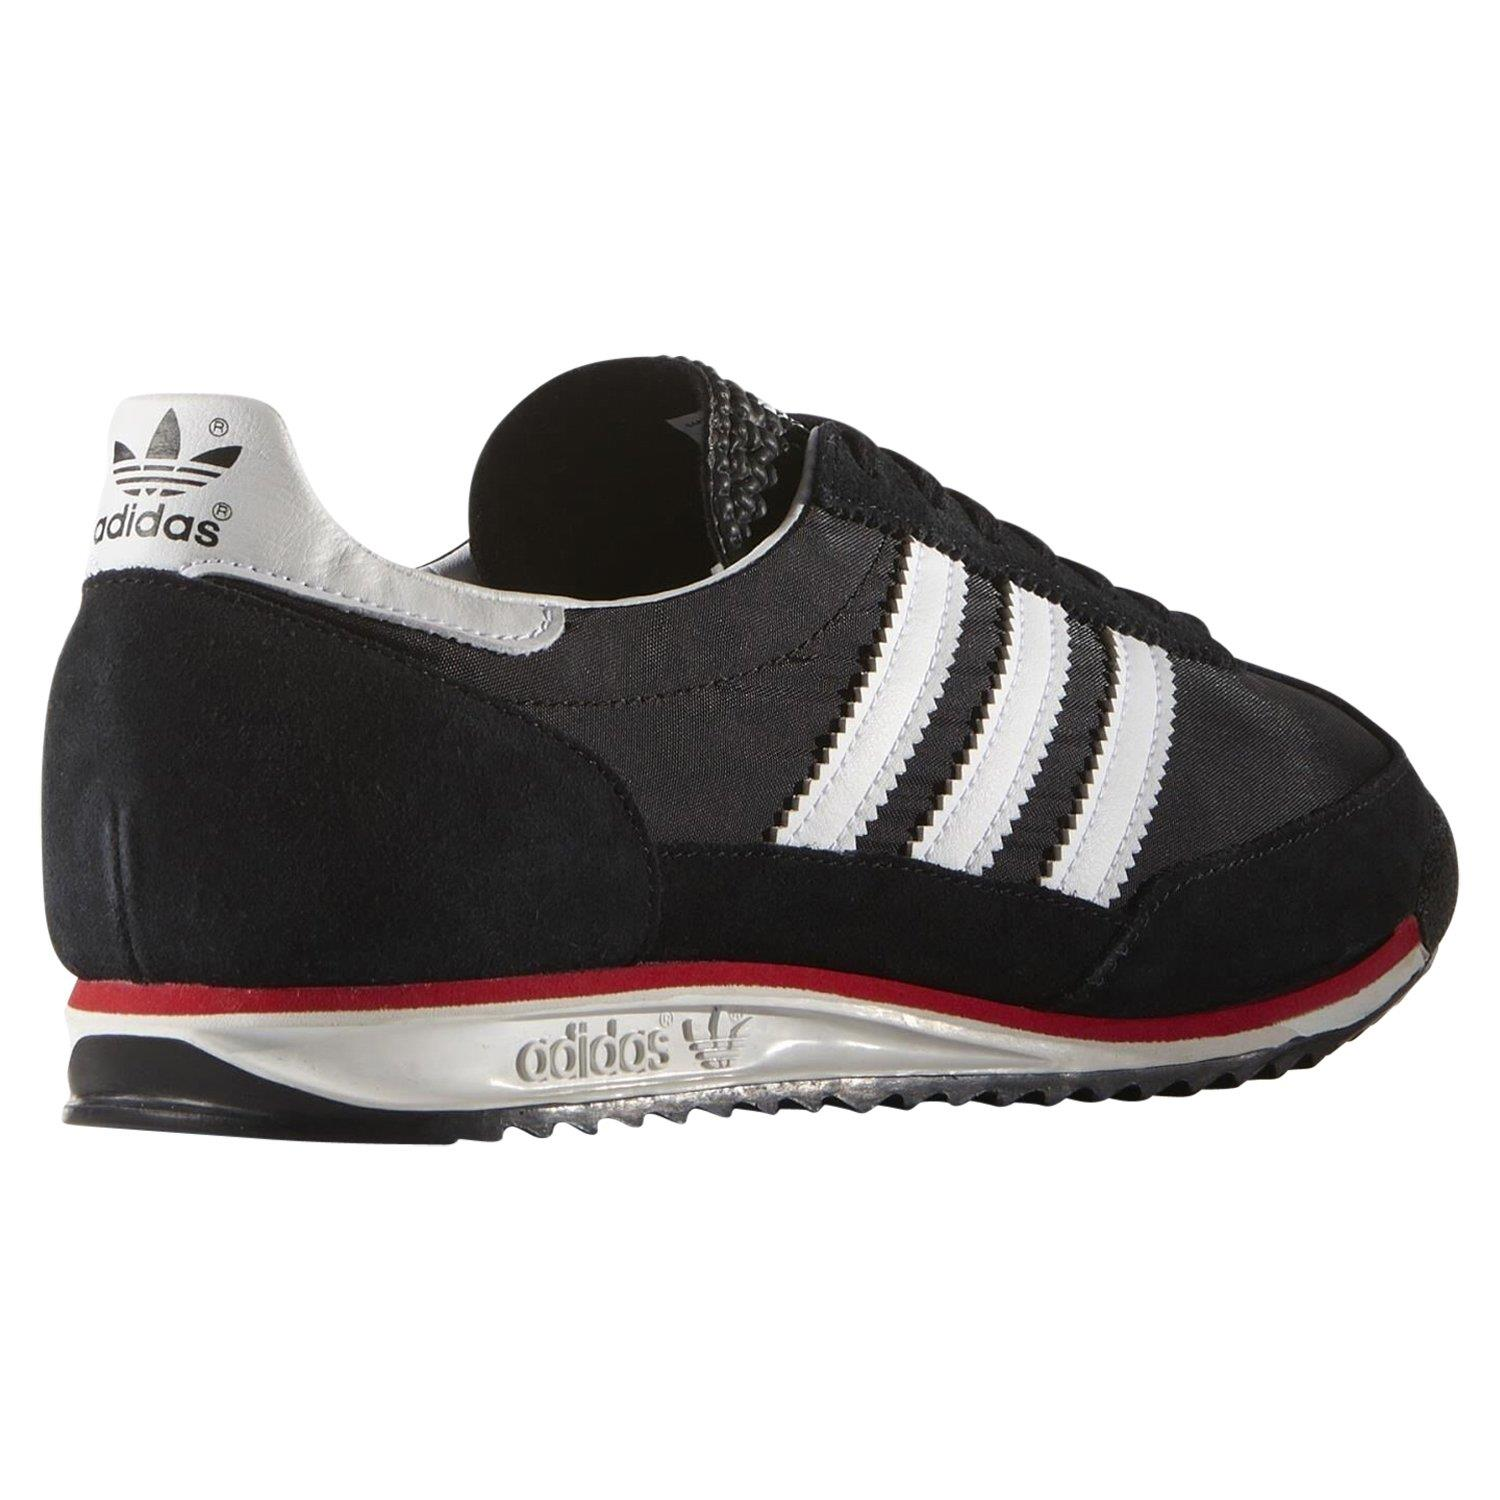 adidas-ORIGINALS-MEN-039-S-SL-72-VINTAGE-TRAINERS-BLACK-NAVY-WHITE-SNEAKERS-SHOES miniatuur 6